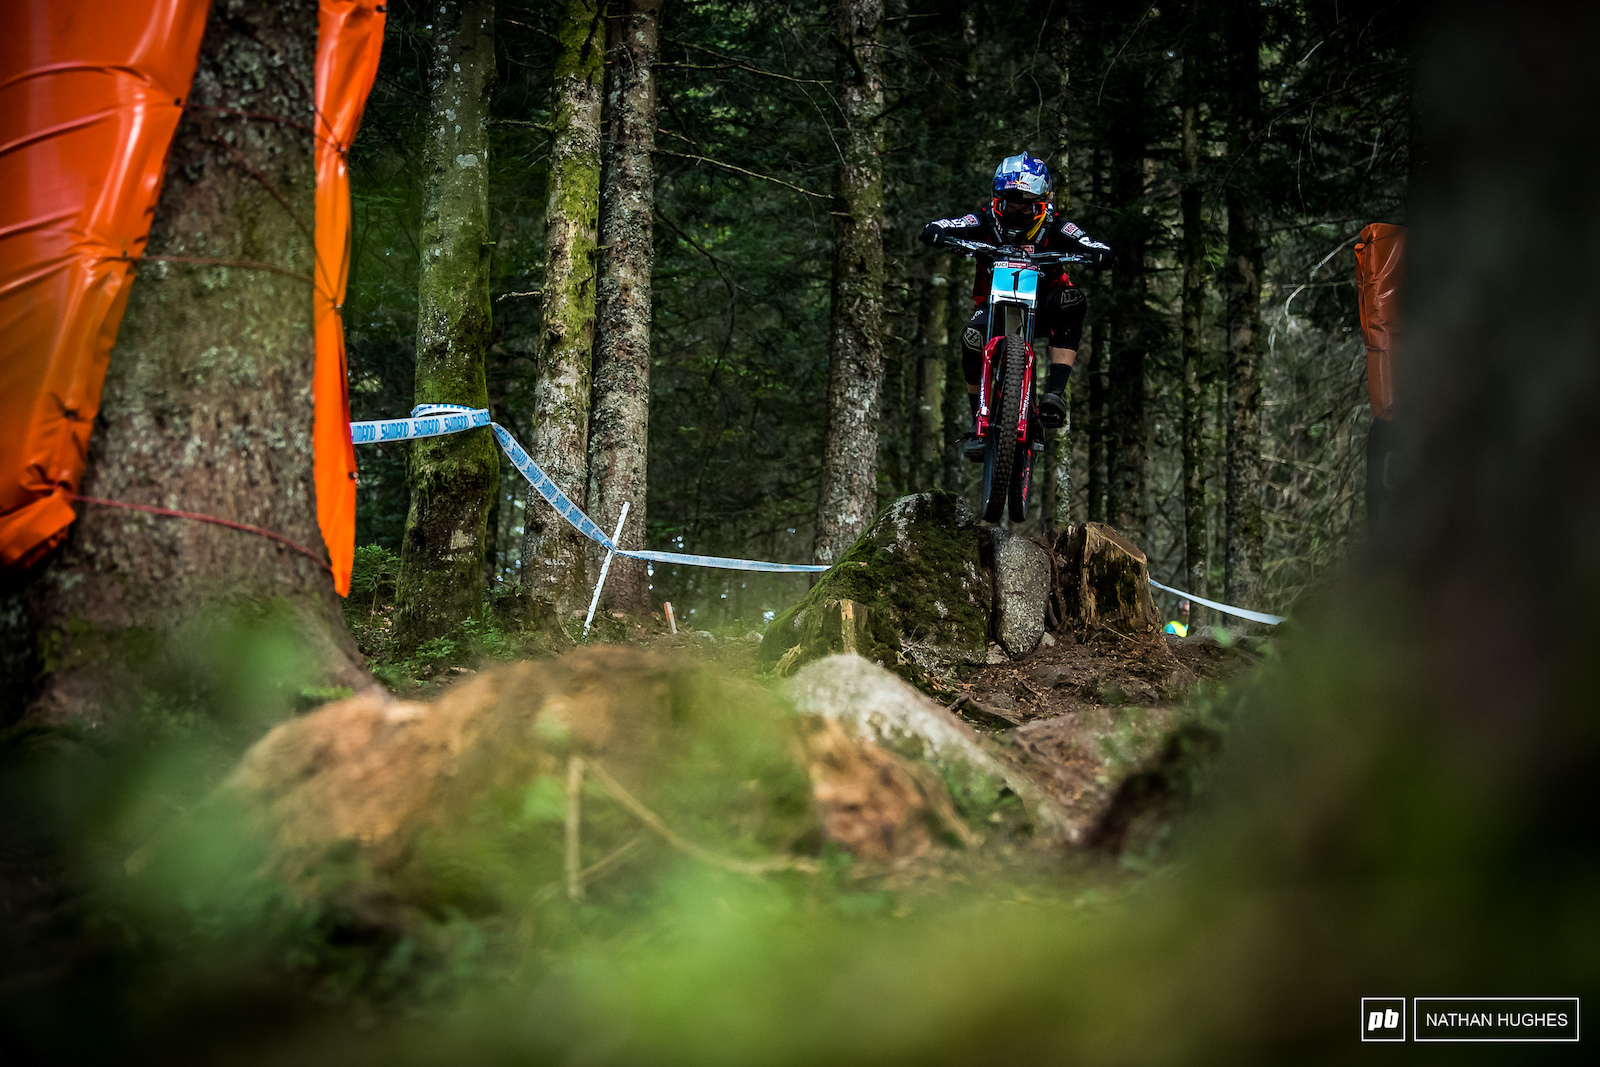 Vali Holl looking to go 6 for 6 and make it a perfect inaugral season of WC racing.